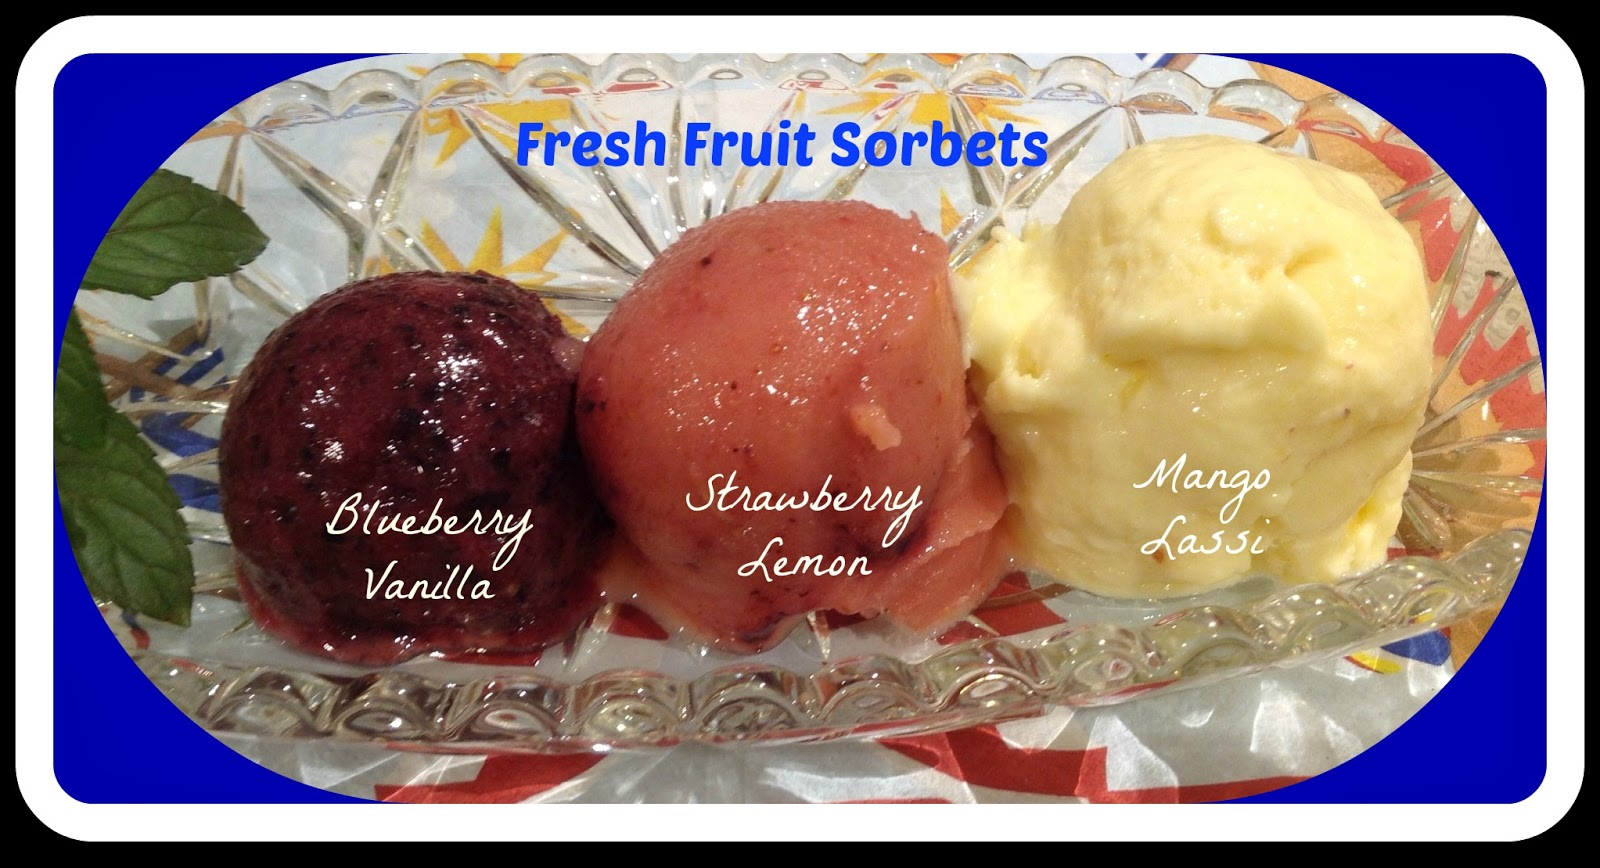 Three flavors of sorbet